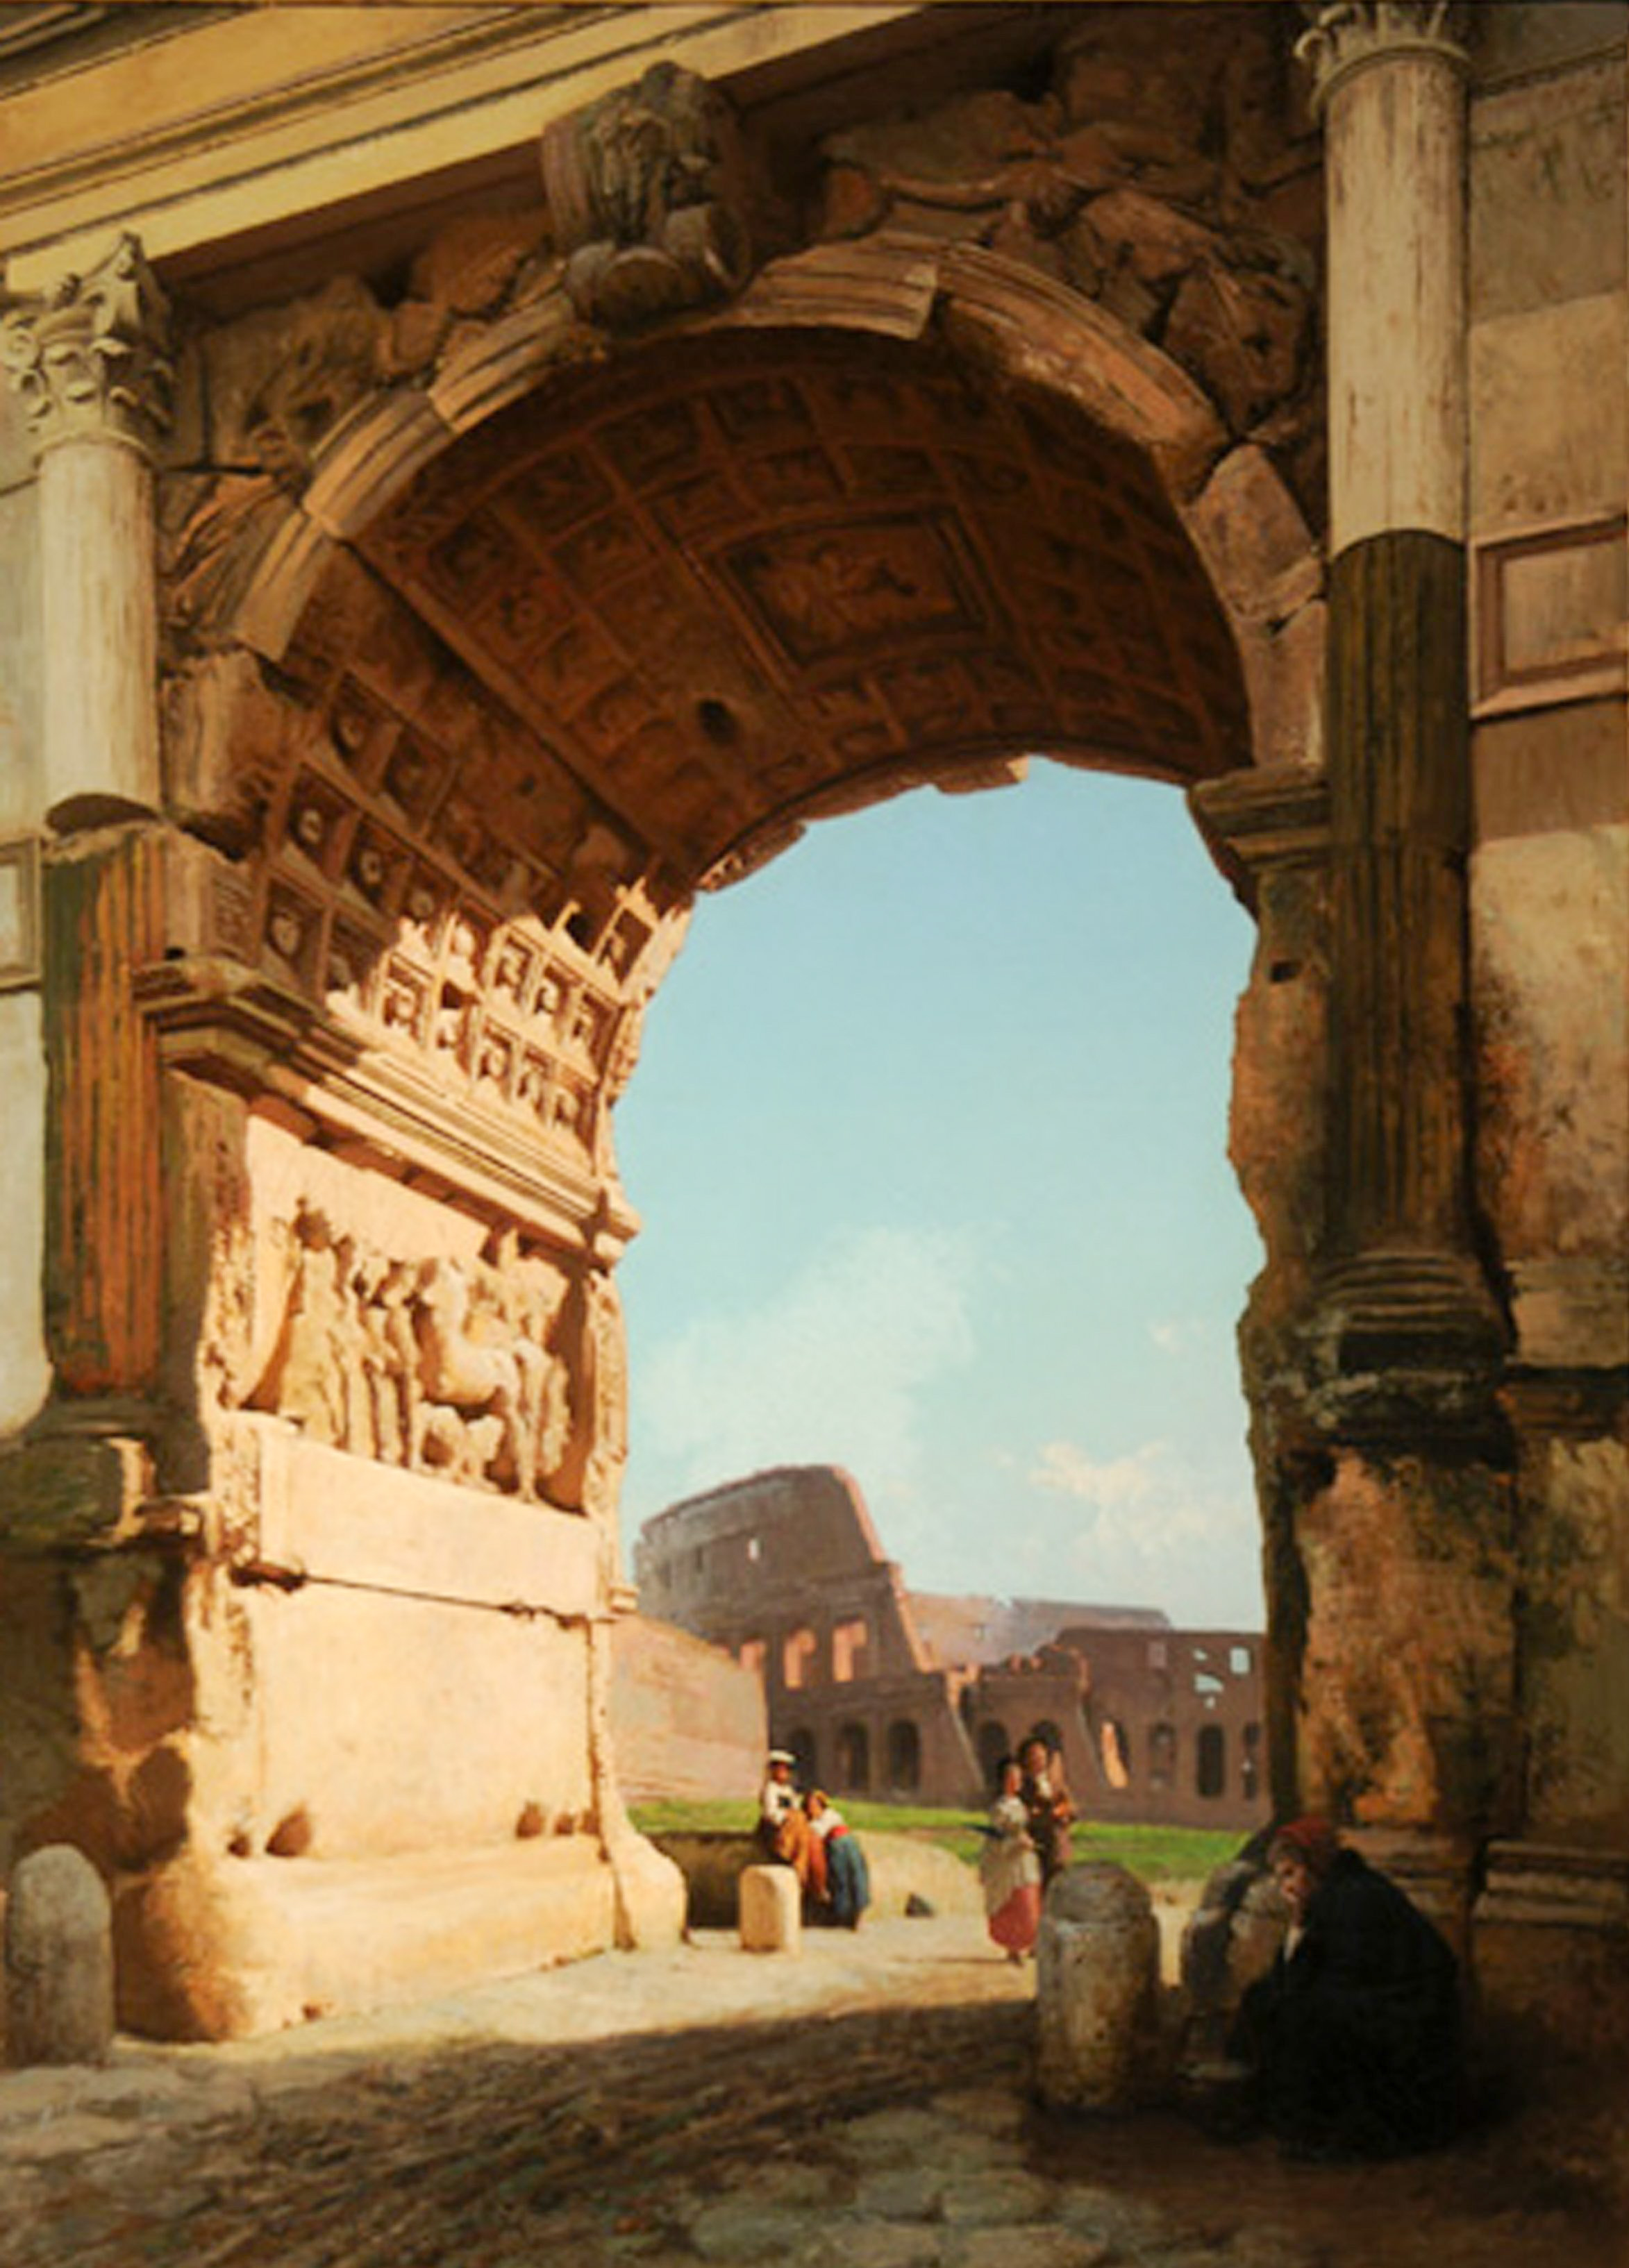 Arch_of_Titus_by_George_Peter_Alexander_Healy,_c_edited.jpg